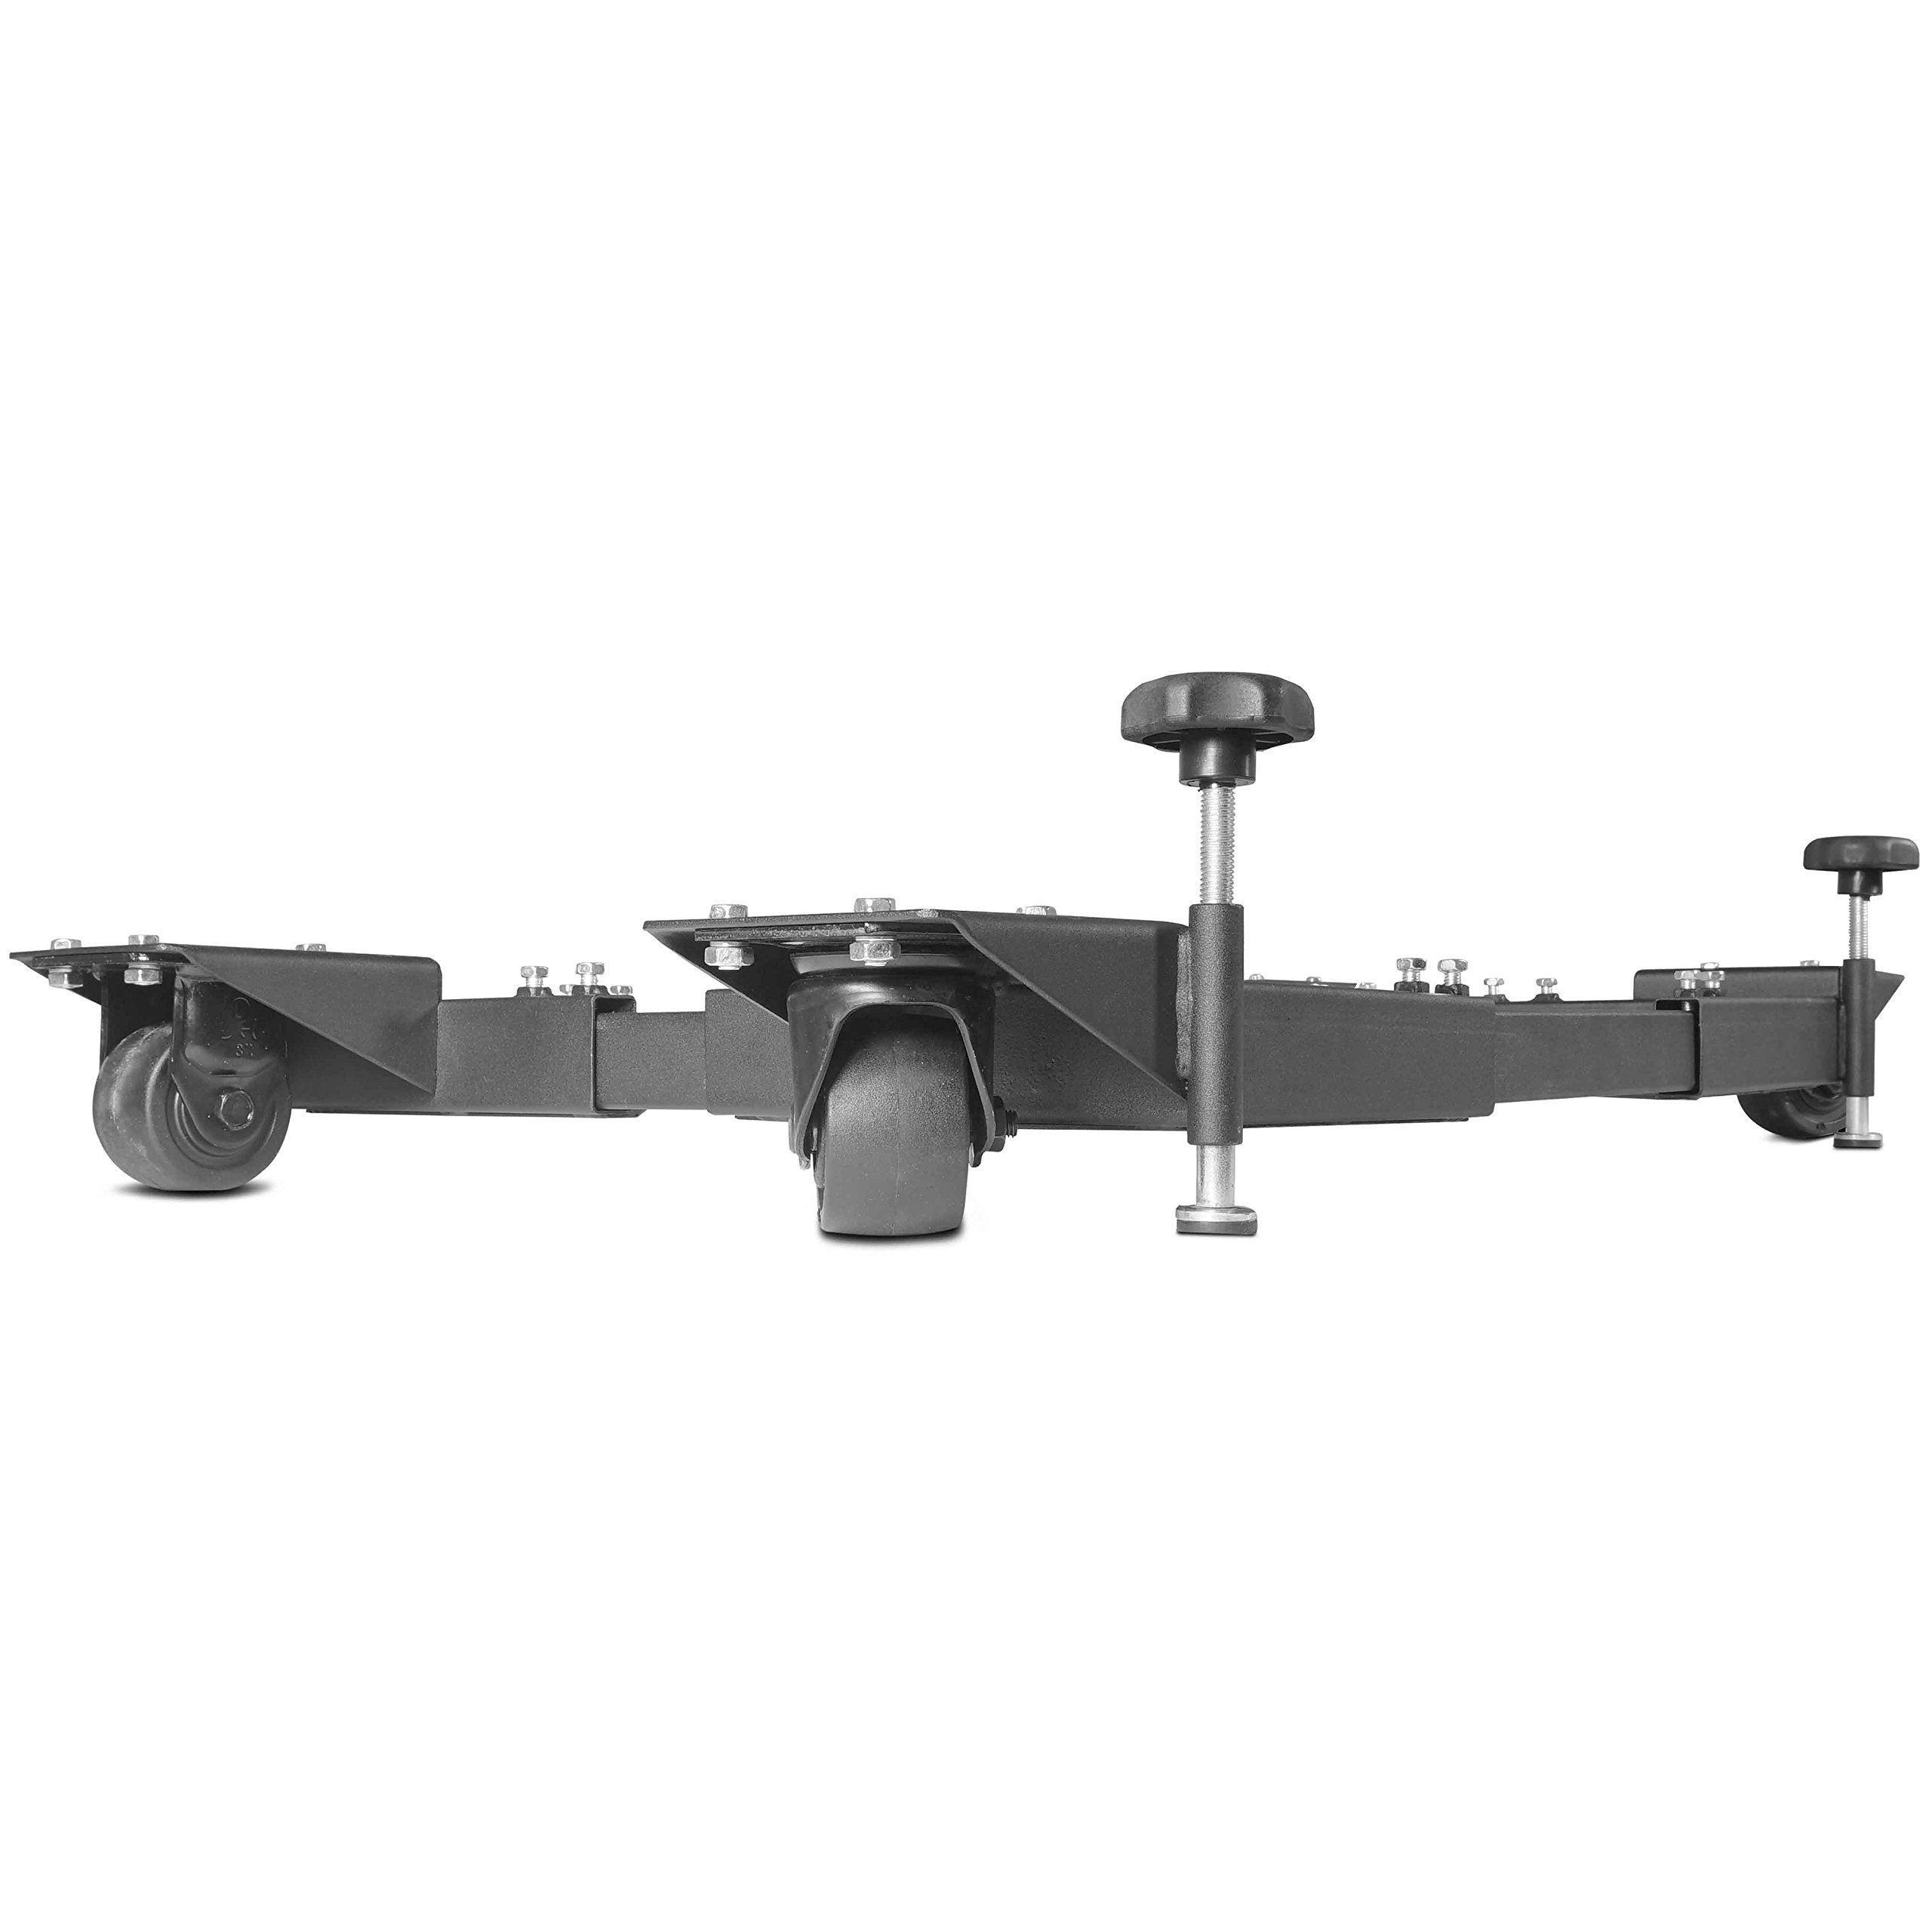 Titan Adjustable Mobile Base Dolly 1200 lb Capacity HD Universal Power Tools - Make Your Workshop Portable & Easy To Use by Titan Attachments (Image #5)